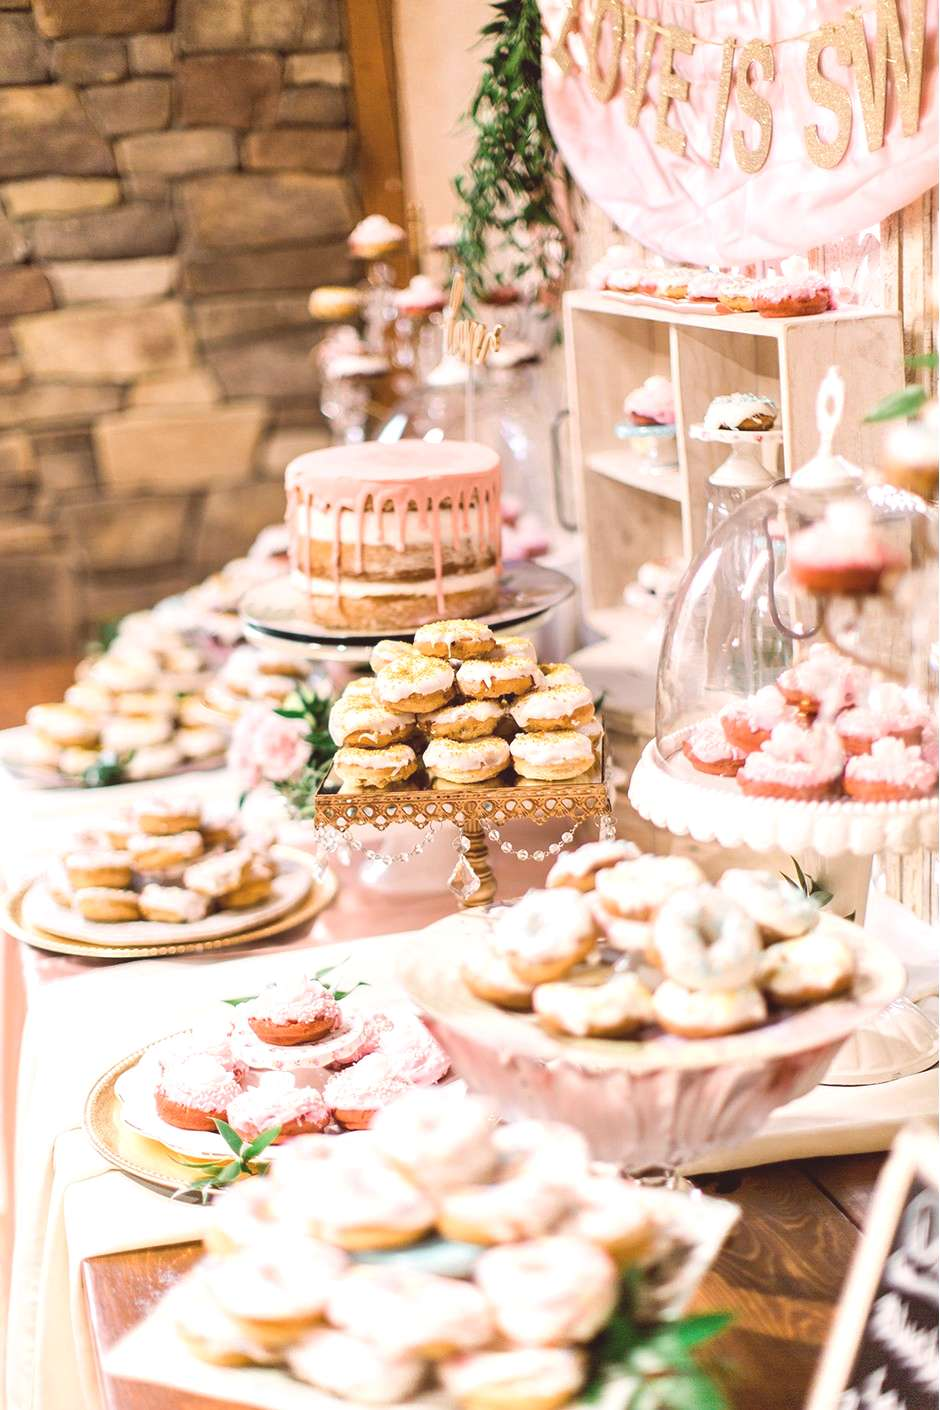 Hello, ultimate wedding sweet table inspiration! If youre planning a dessert table, this blush pin